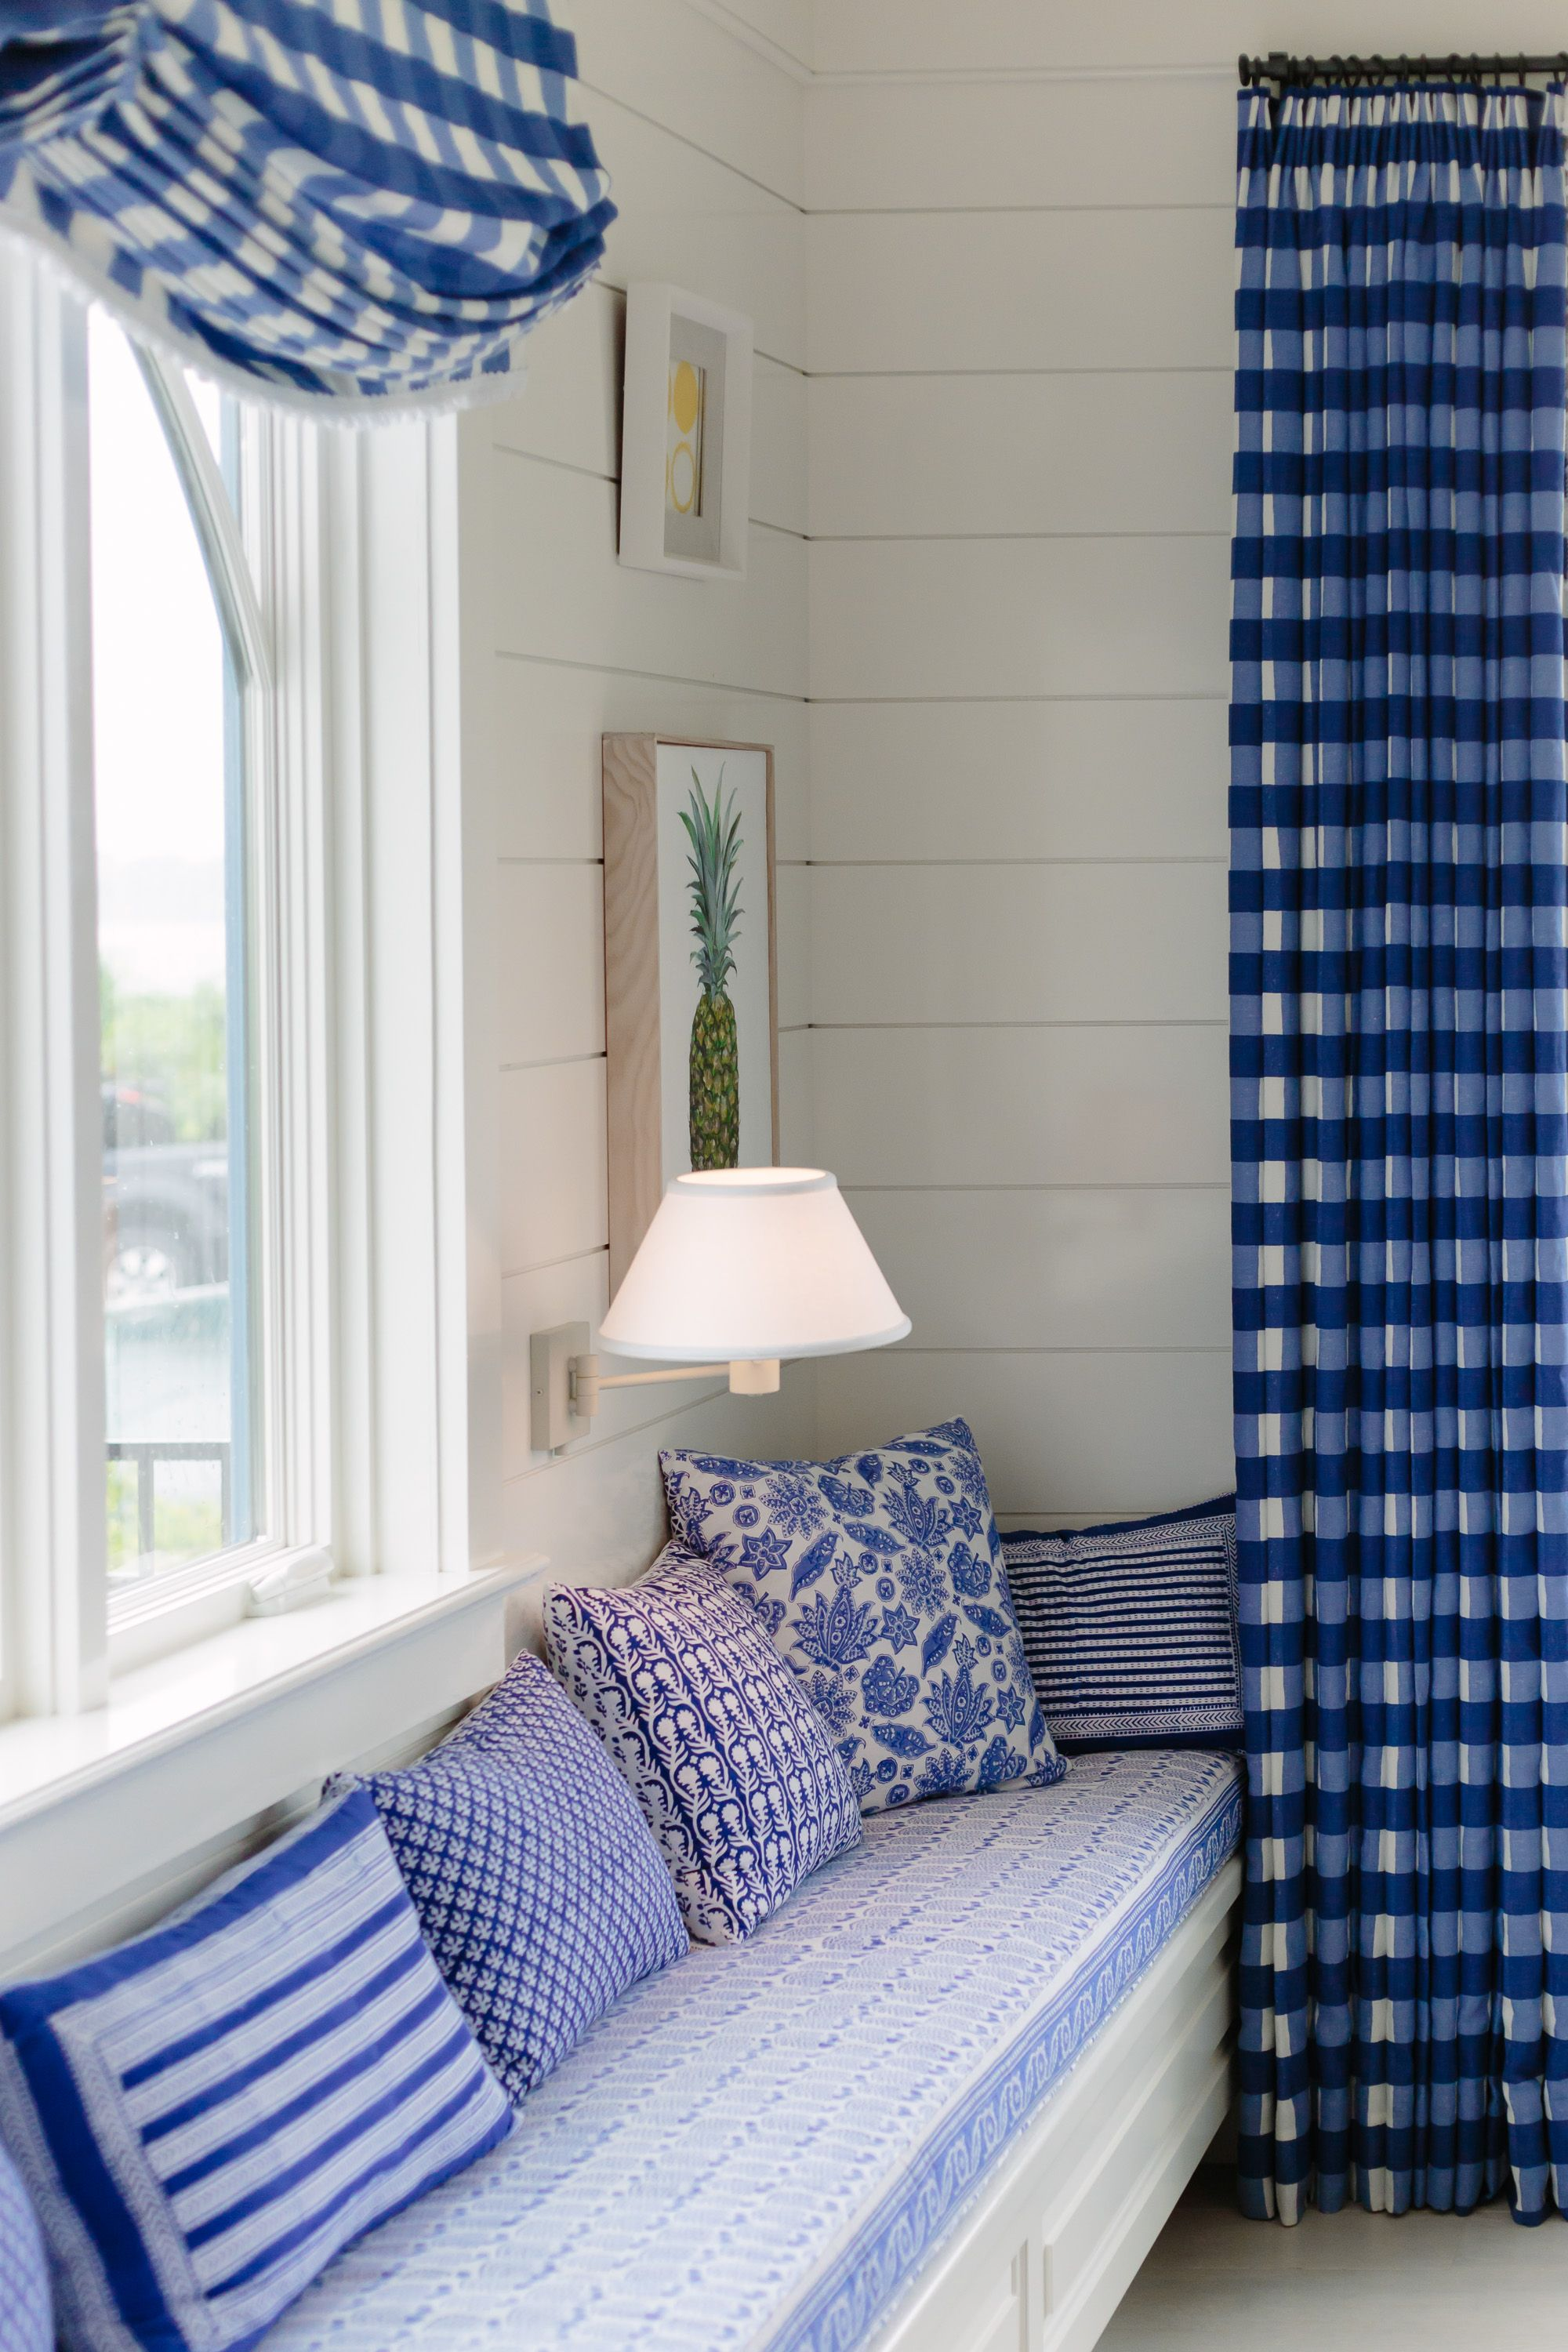 cottage room ideas fresh design lovely at seaside imaginative interior home decor